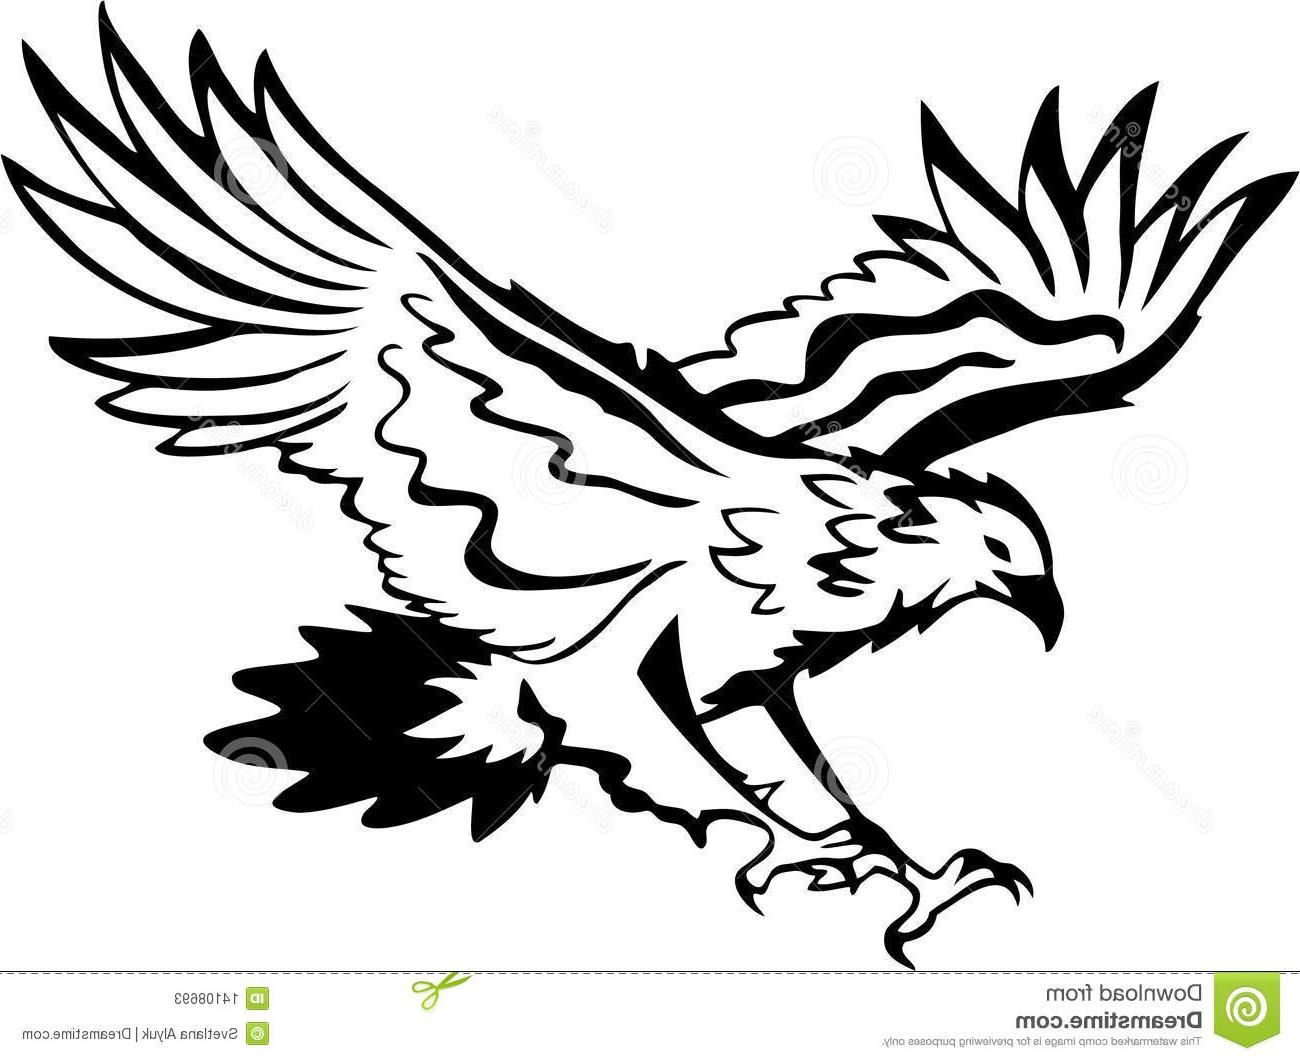 medium resolution of eagle clip art black and white best free eagle flying clipart black and white vector cdr